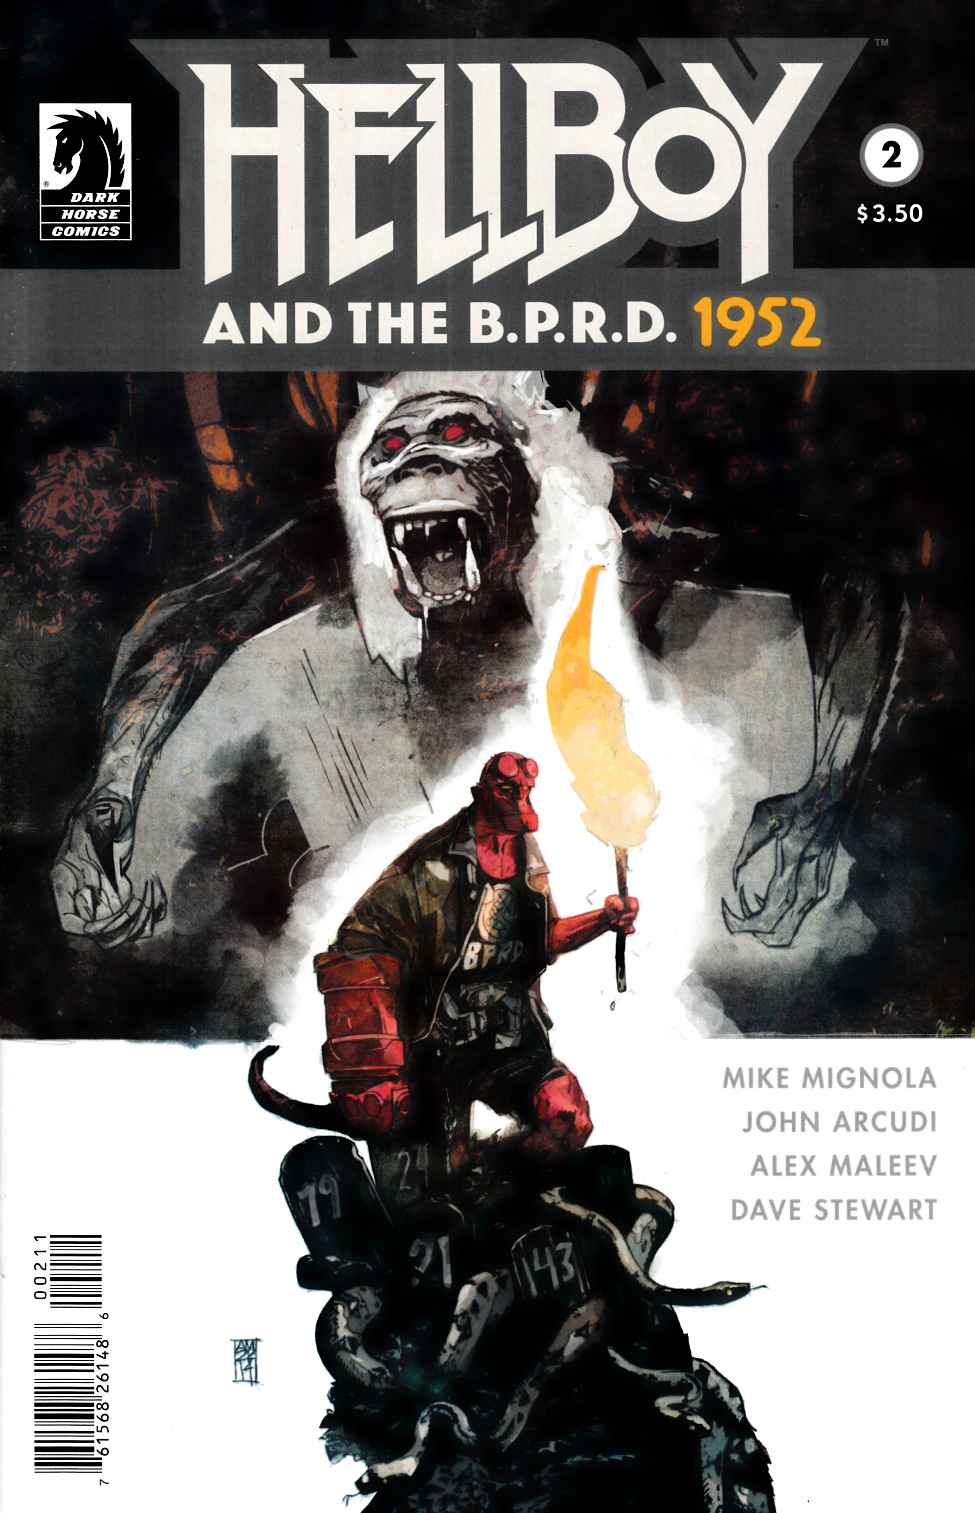 Hellboy and the BPRD #2 1952 [Dark Horse Comic]